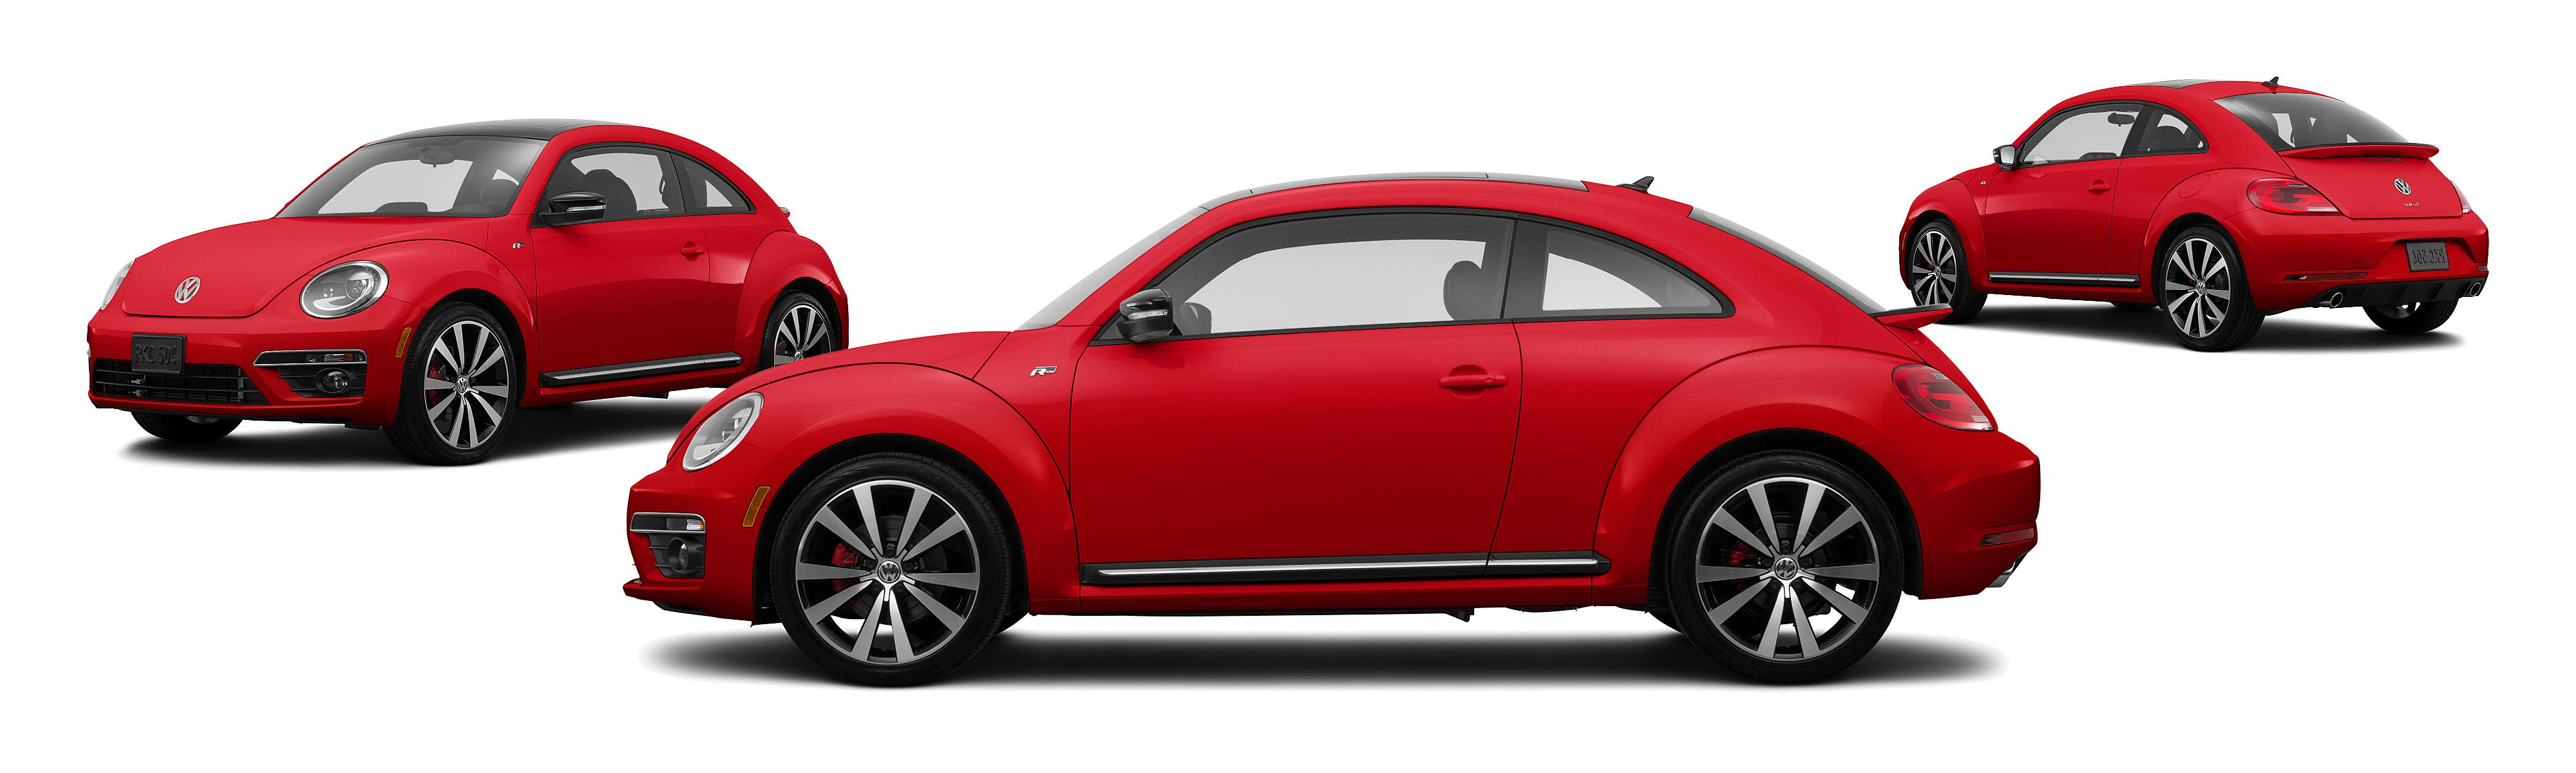 beetle best and volkswagen review deals present buyacar guide buying price prices hatchback vw header